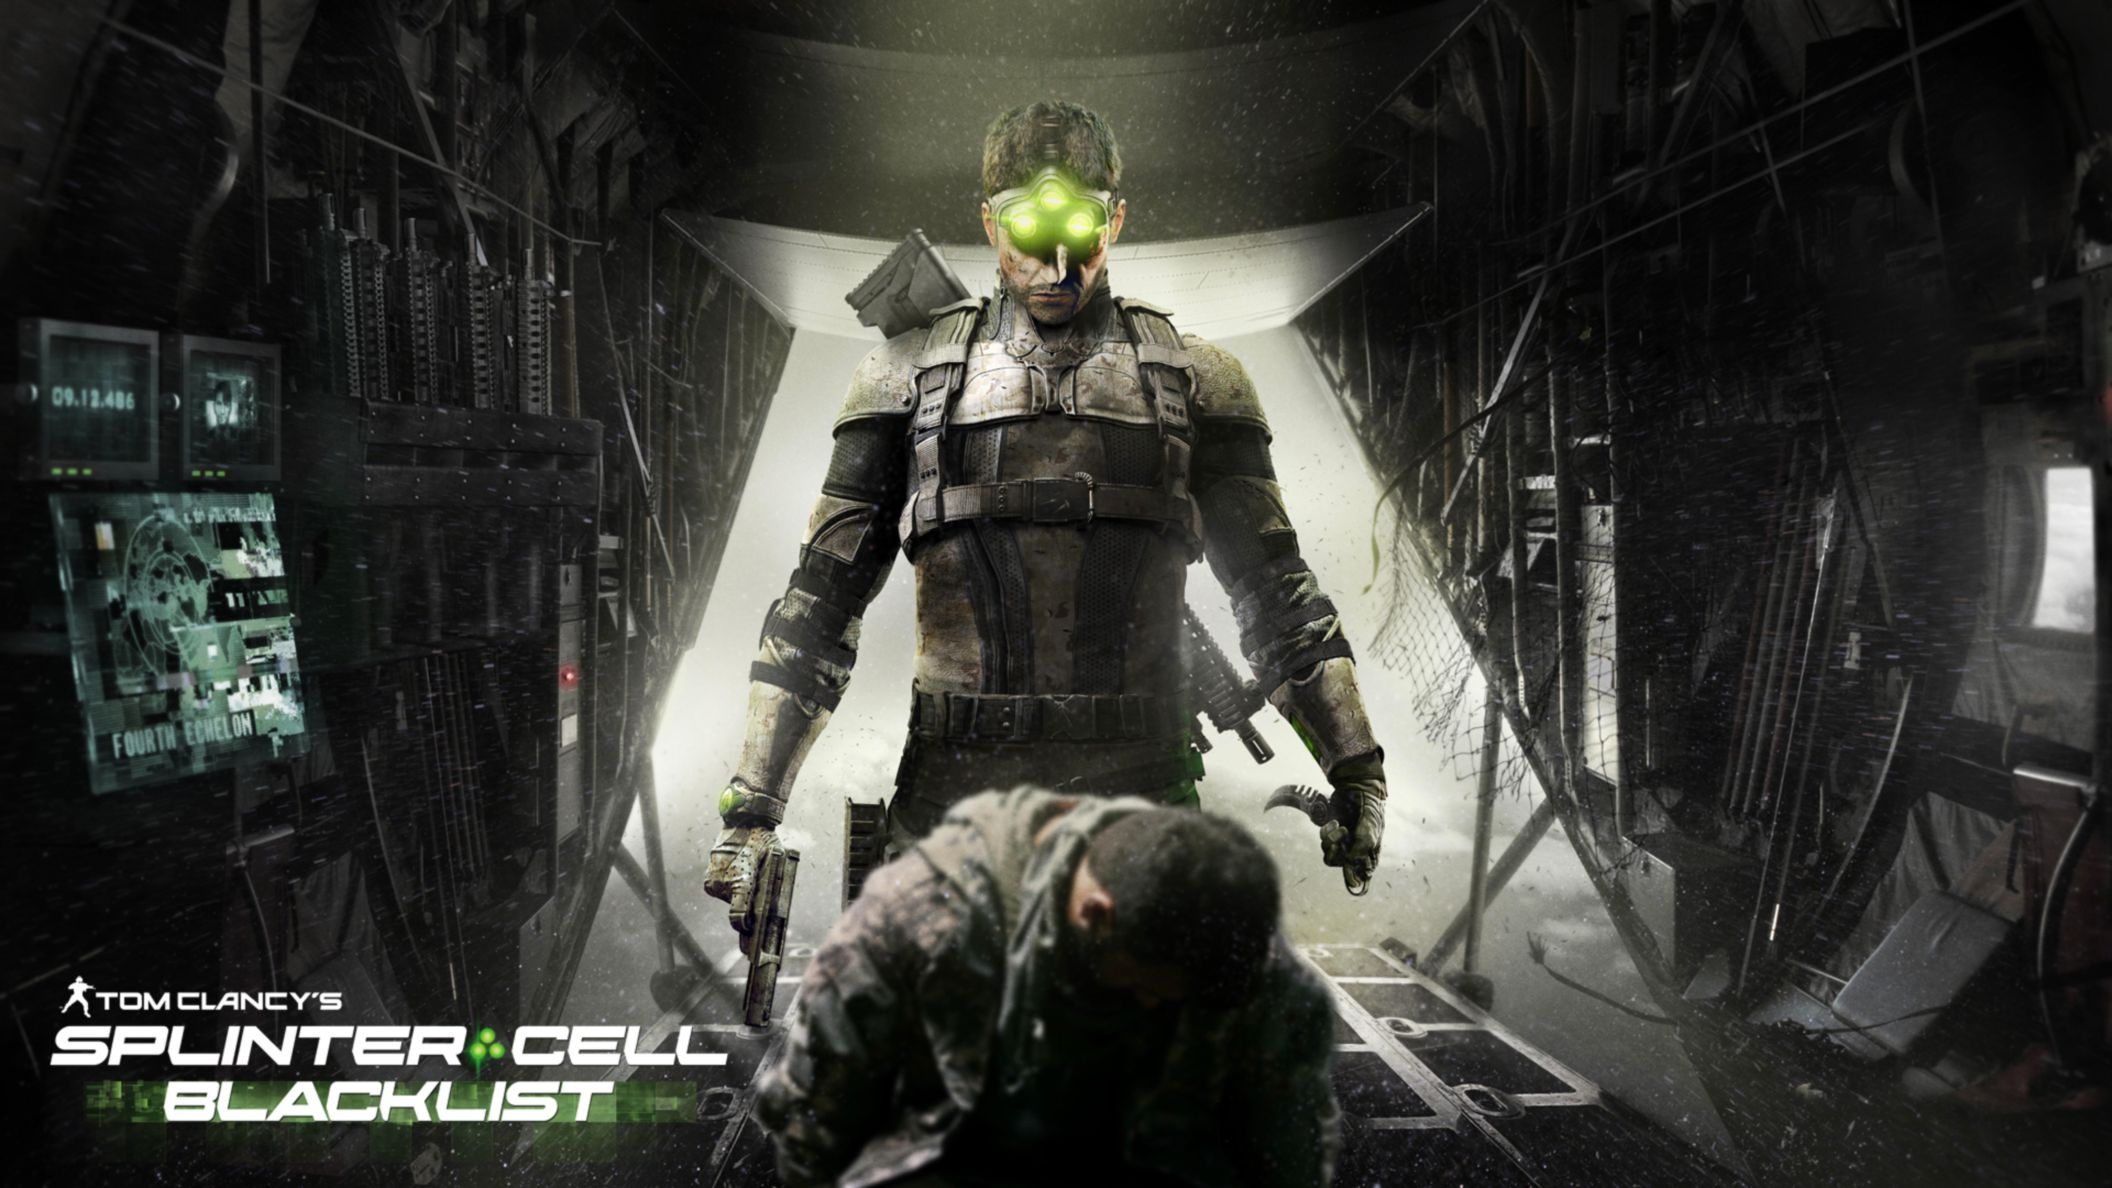 Download free HD Splinter Cell Blacklist 2013 HD Wallpaper, image